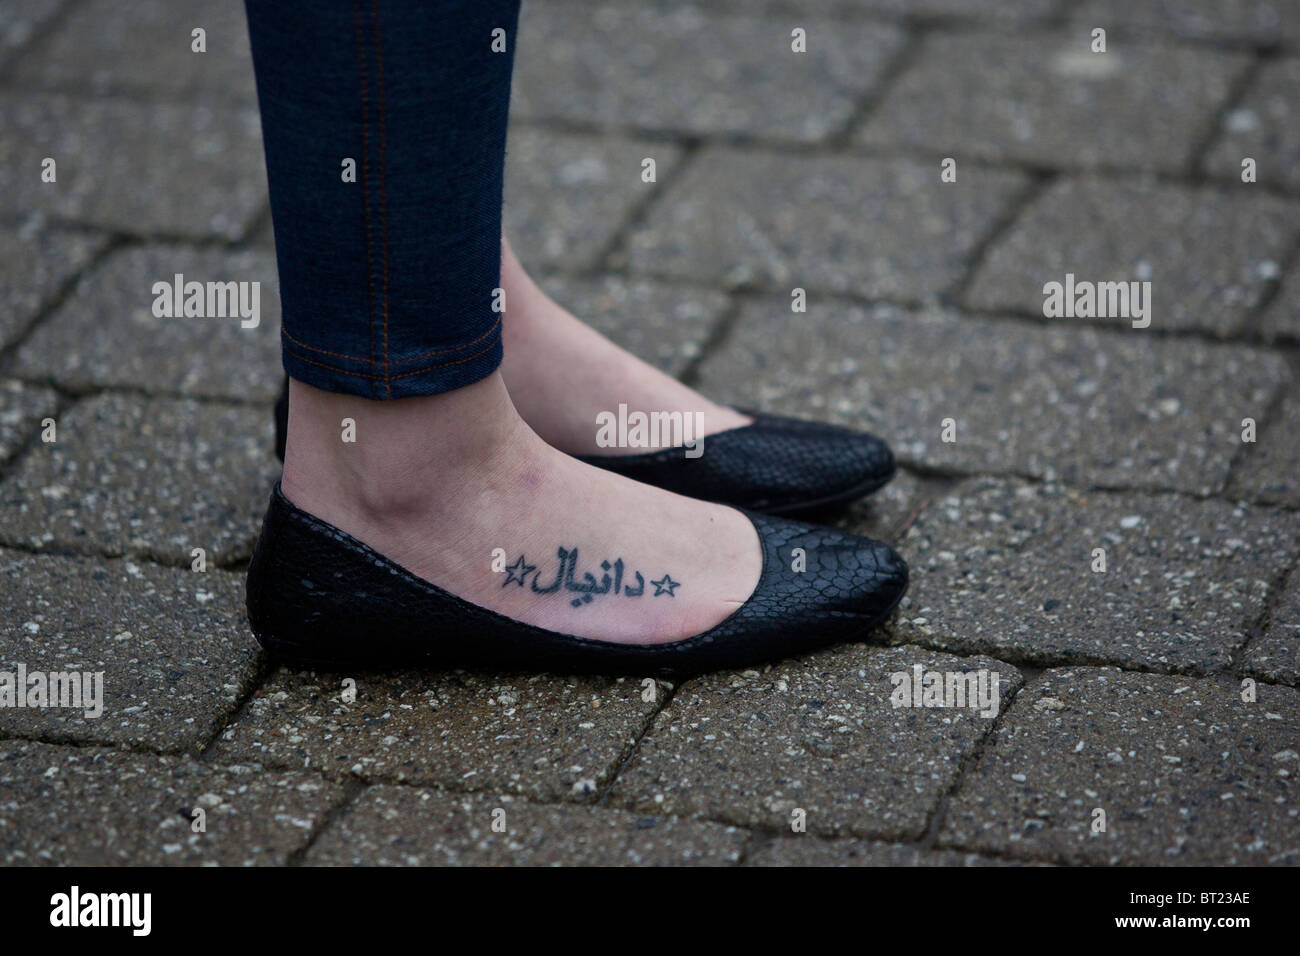 9b3ccd300f47 All Star Shoes Stock Photos   All Star Shoes Stock Images - Alamy